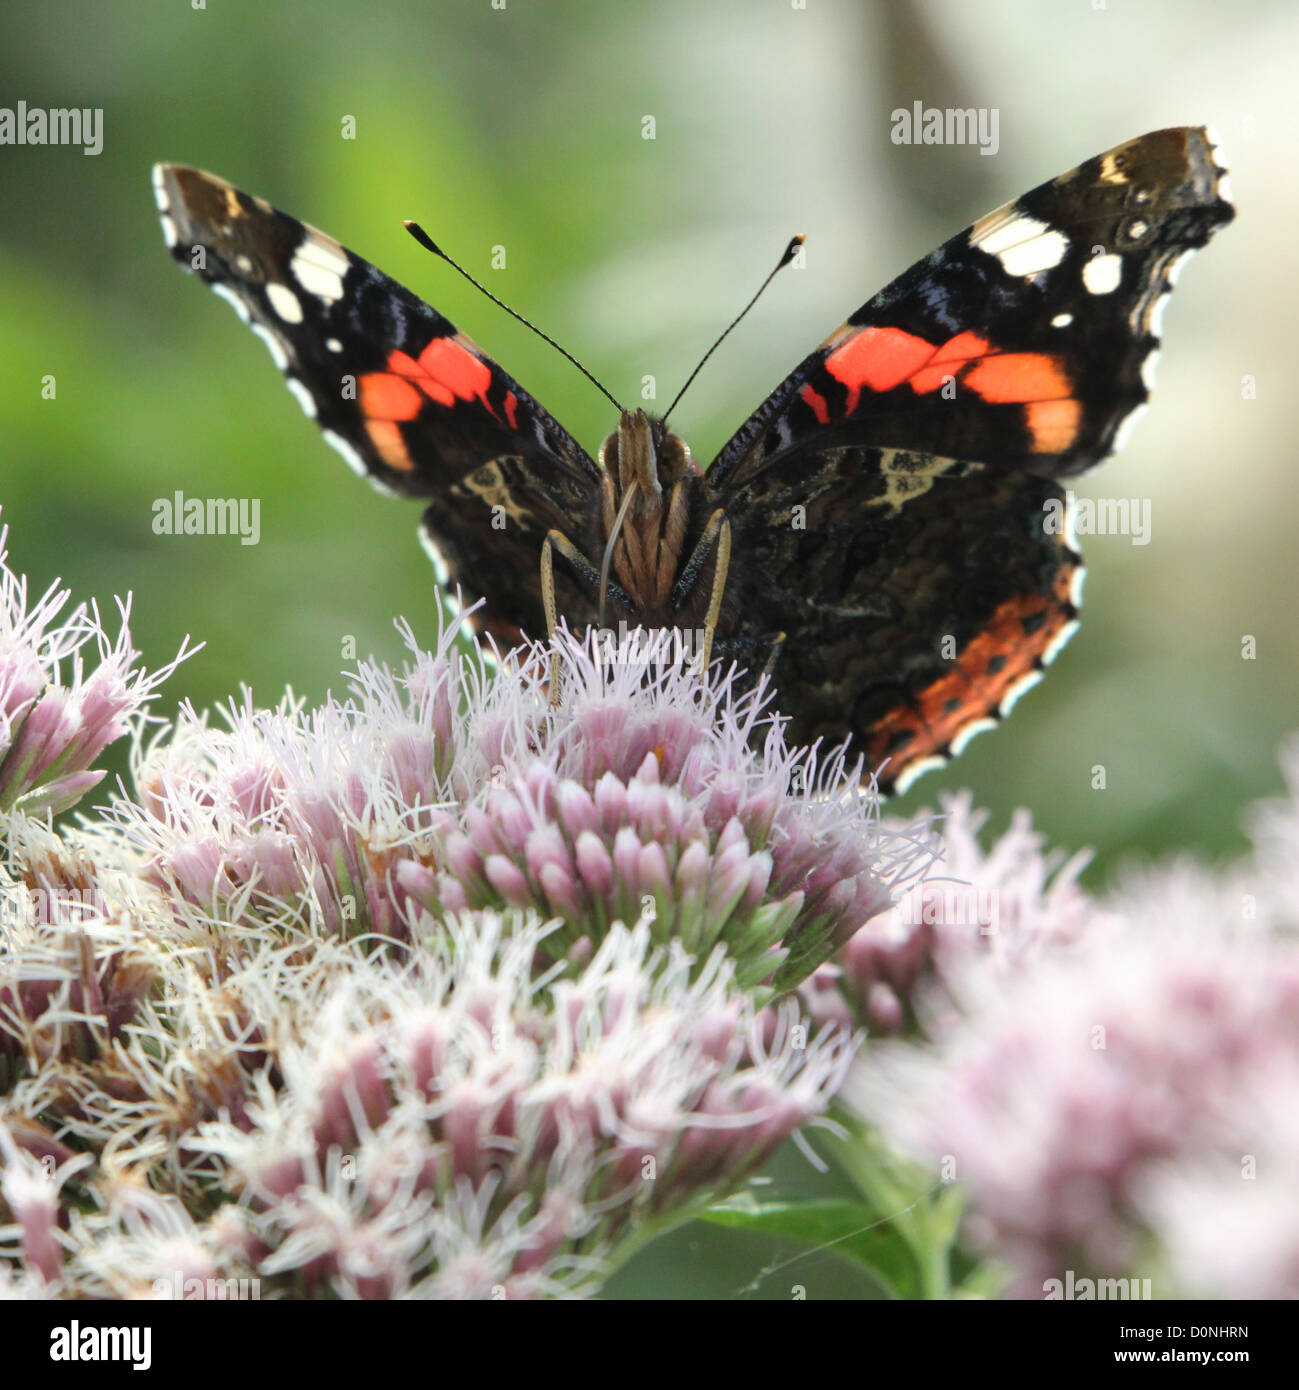 Frontal view of a Red admiral butterfly (vanessa atalanta) while foraging - Stock Image